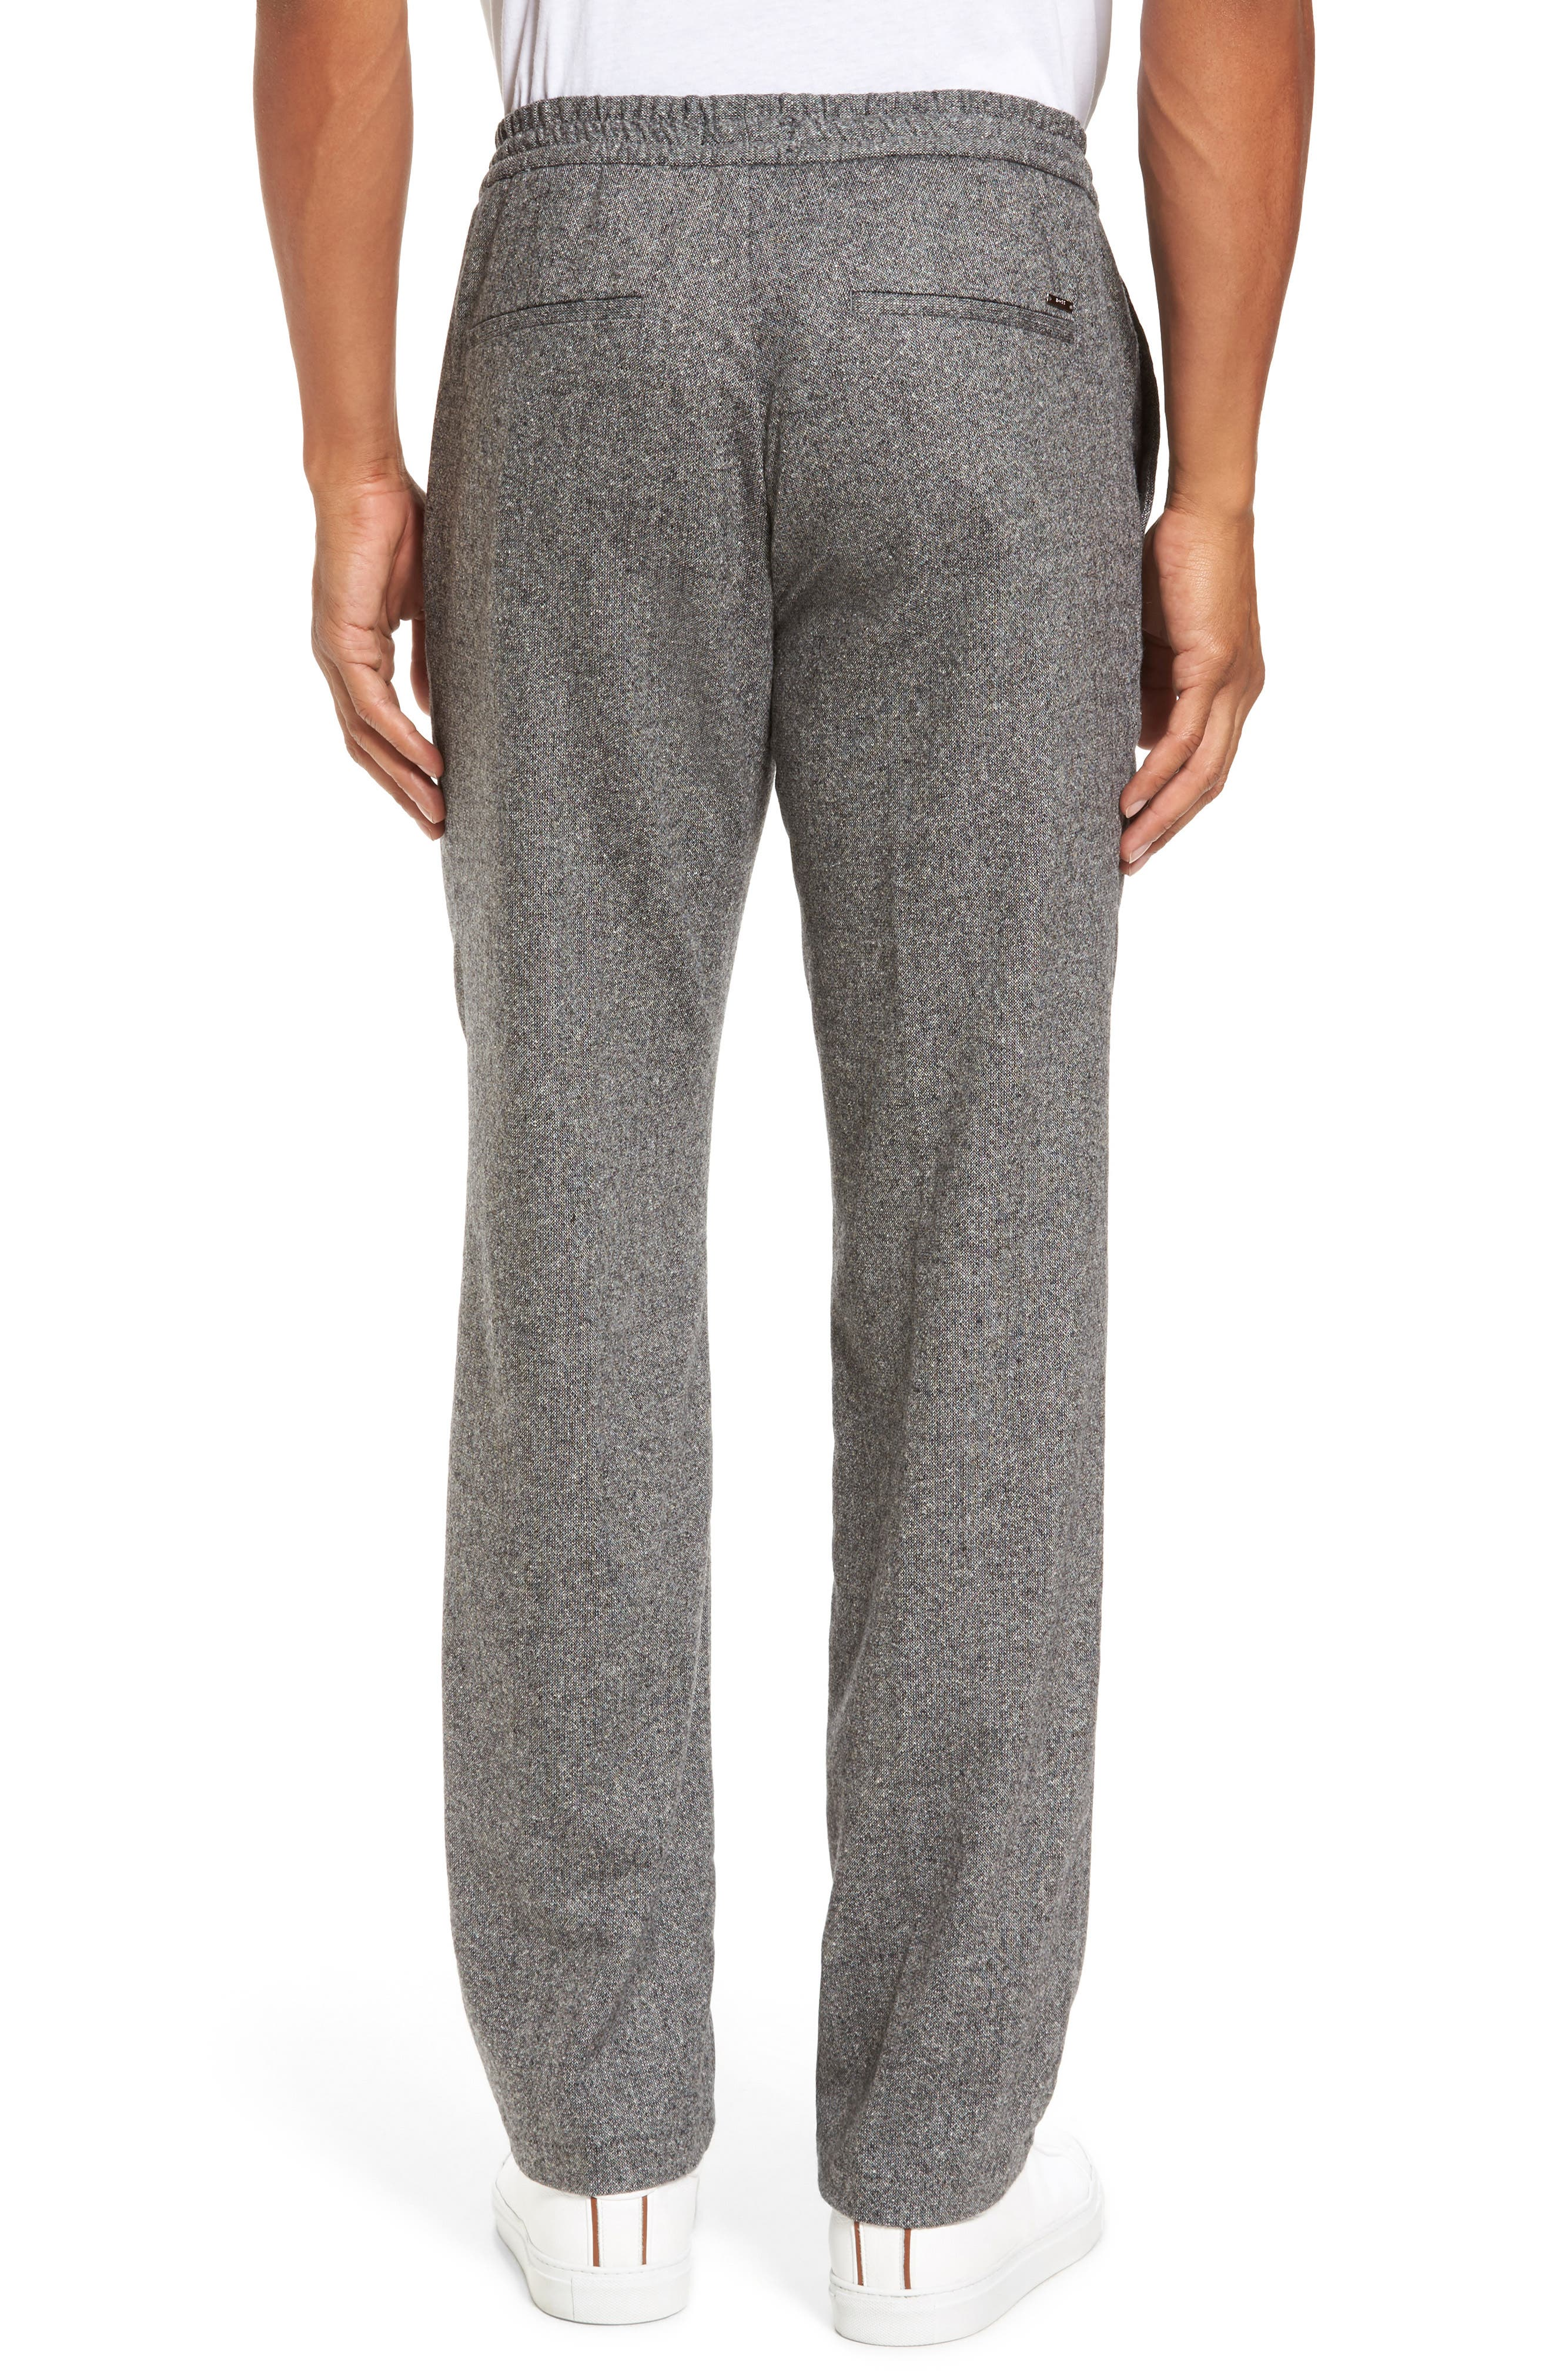 Barne Drawstring Waist Trousers,                             Alternate thumbnail 2, color,                             Grey